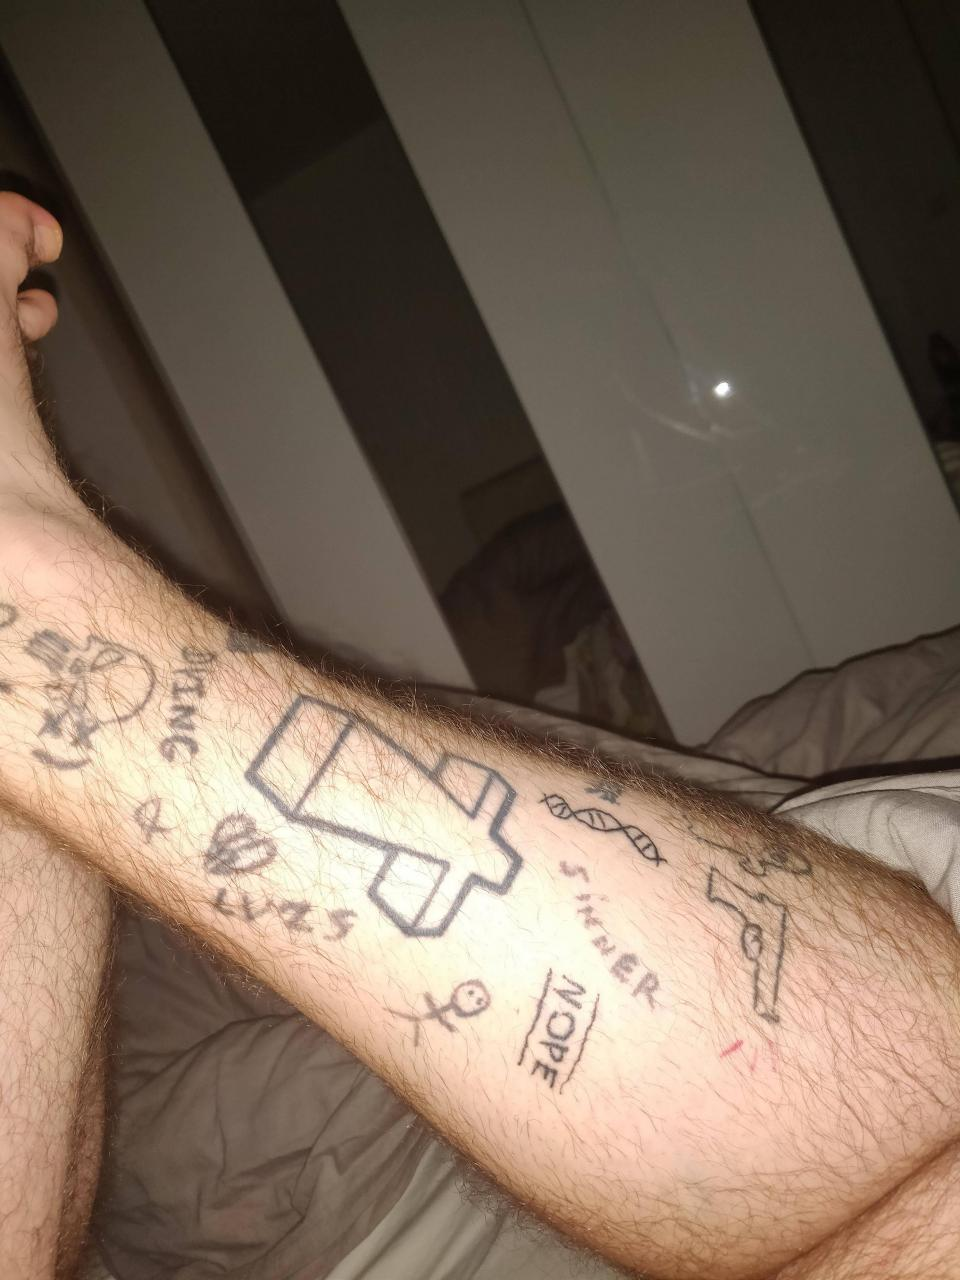 I have a shitty tattoo leg made mostly by myself. Give me ideas and also if you're in Paris you can tattoo me. I can send more pics if dm